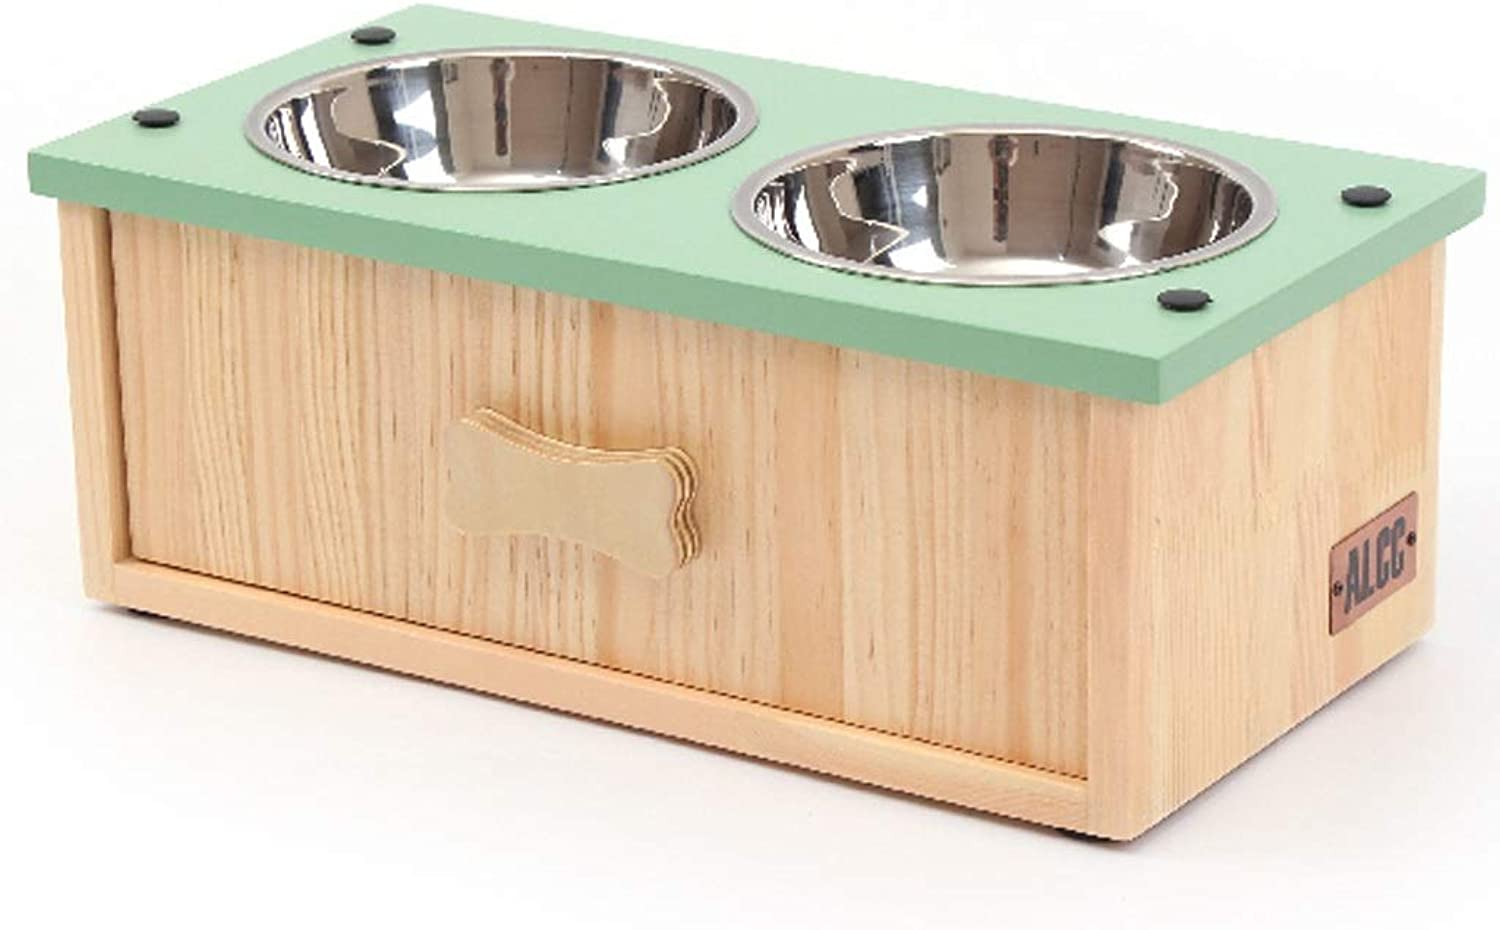 Elevated Dog Cat Bowls with Drawer Design,Stainless Steel Feeding Stations,Raised Pet Feeder Solid Wooden Stand Perfect for Cats and Small Dogs (color   Green, Design   B)